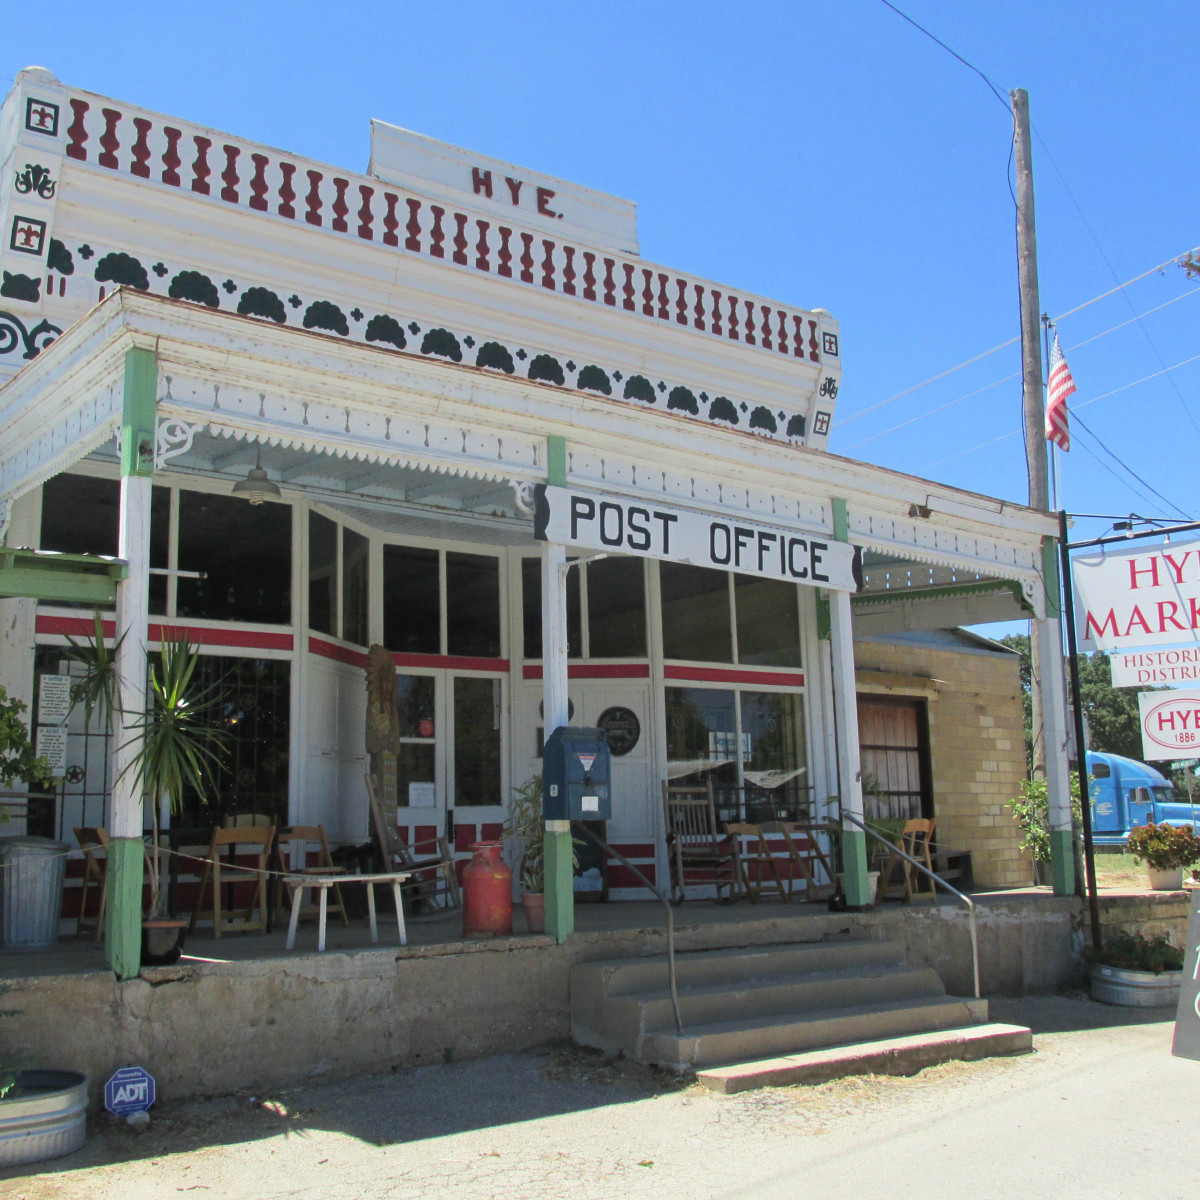 Hye Market exterior general store post office 2015